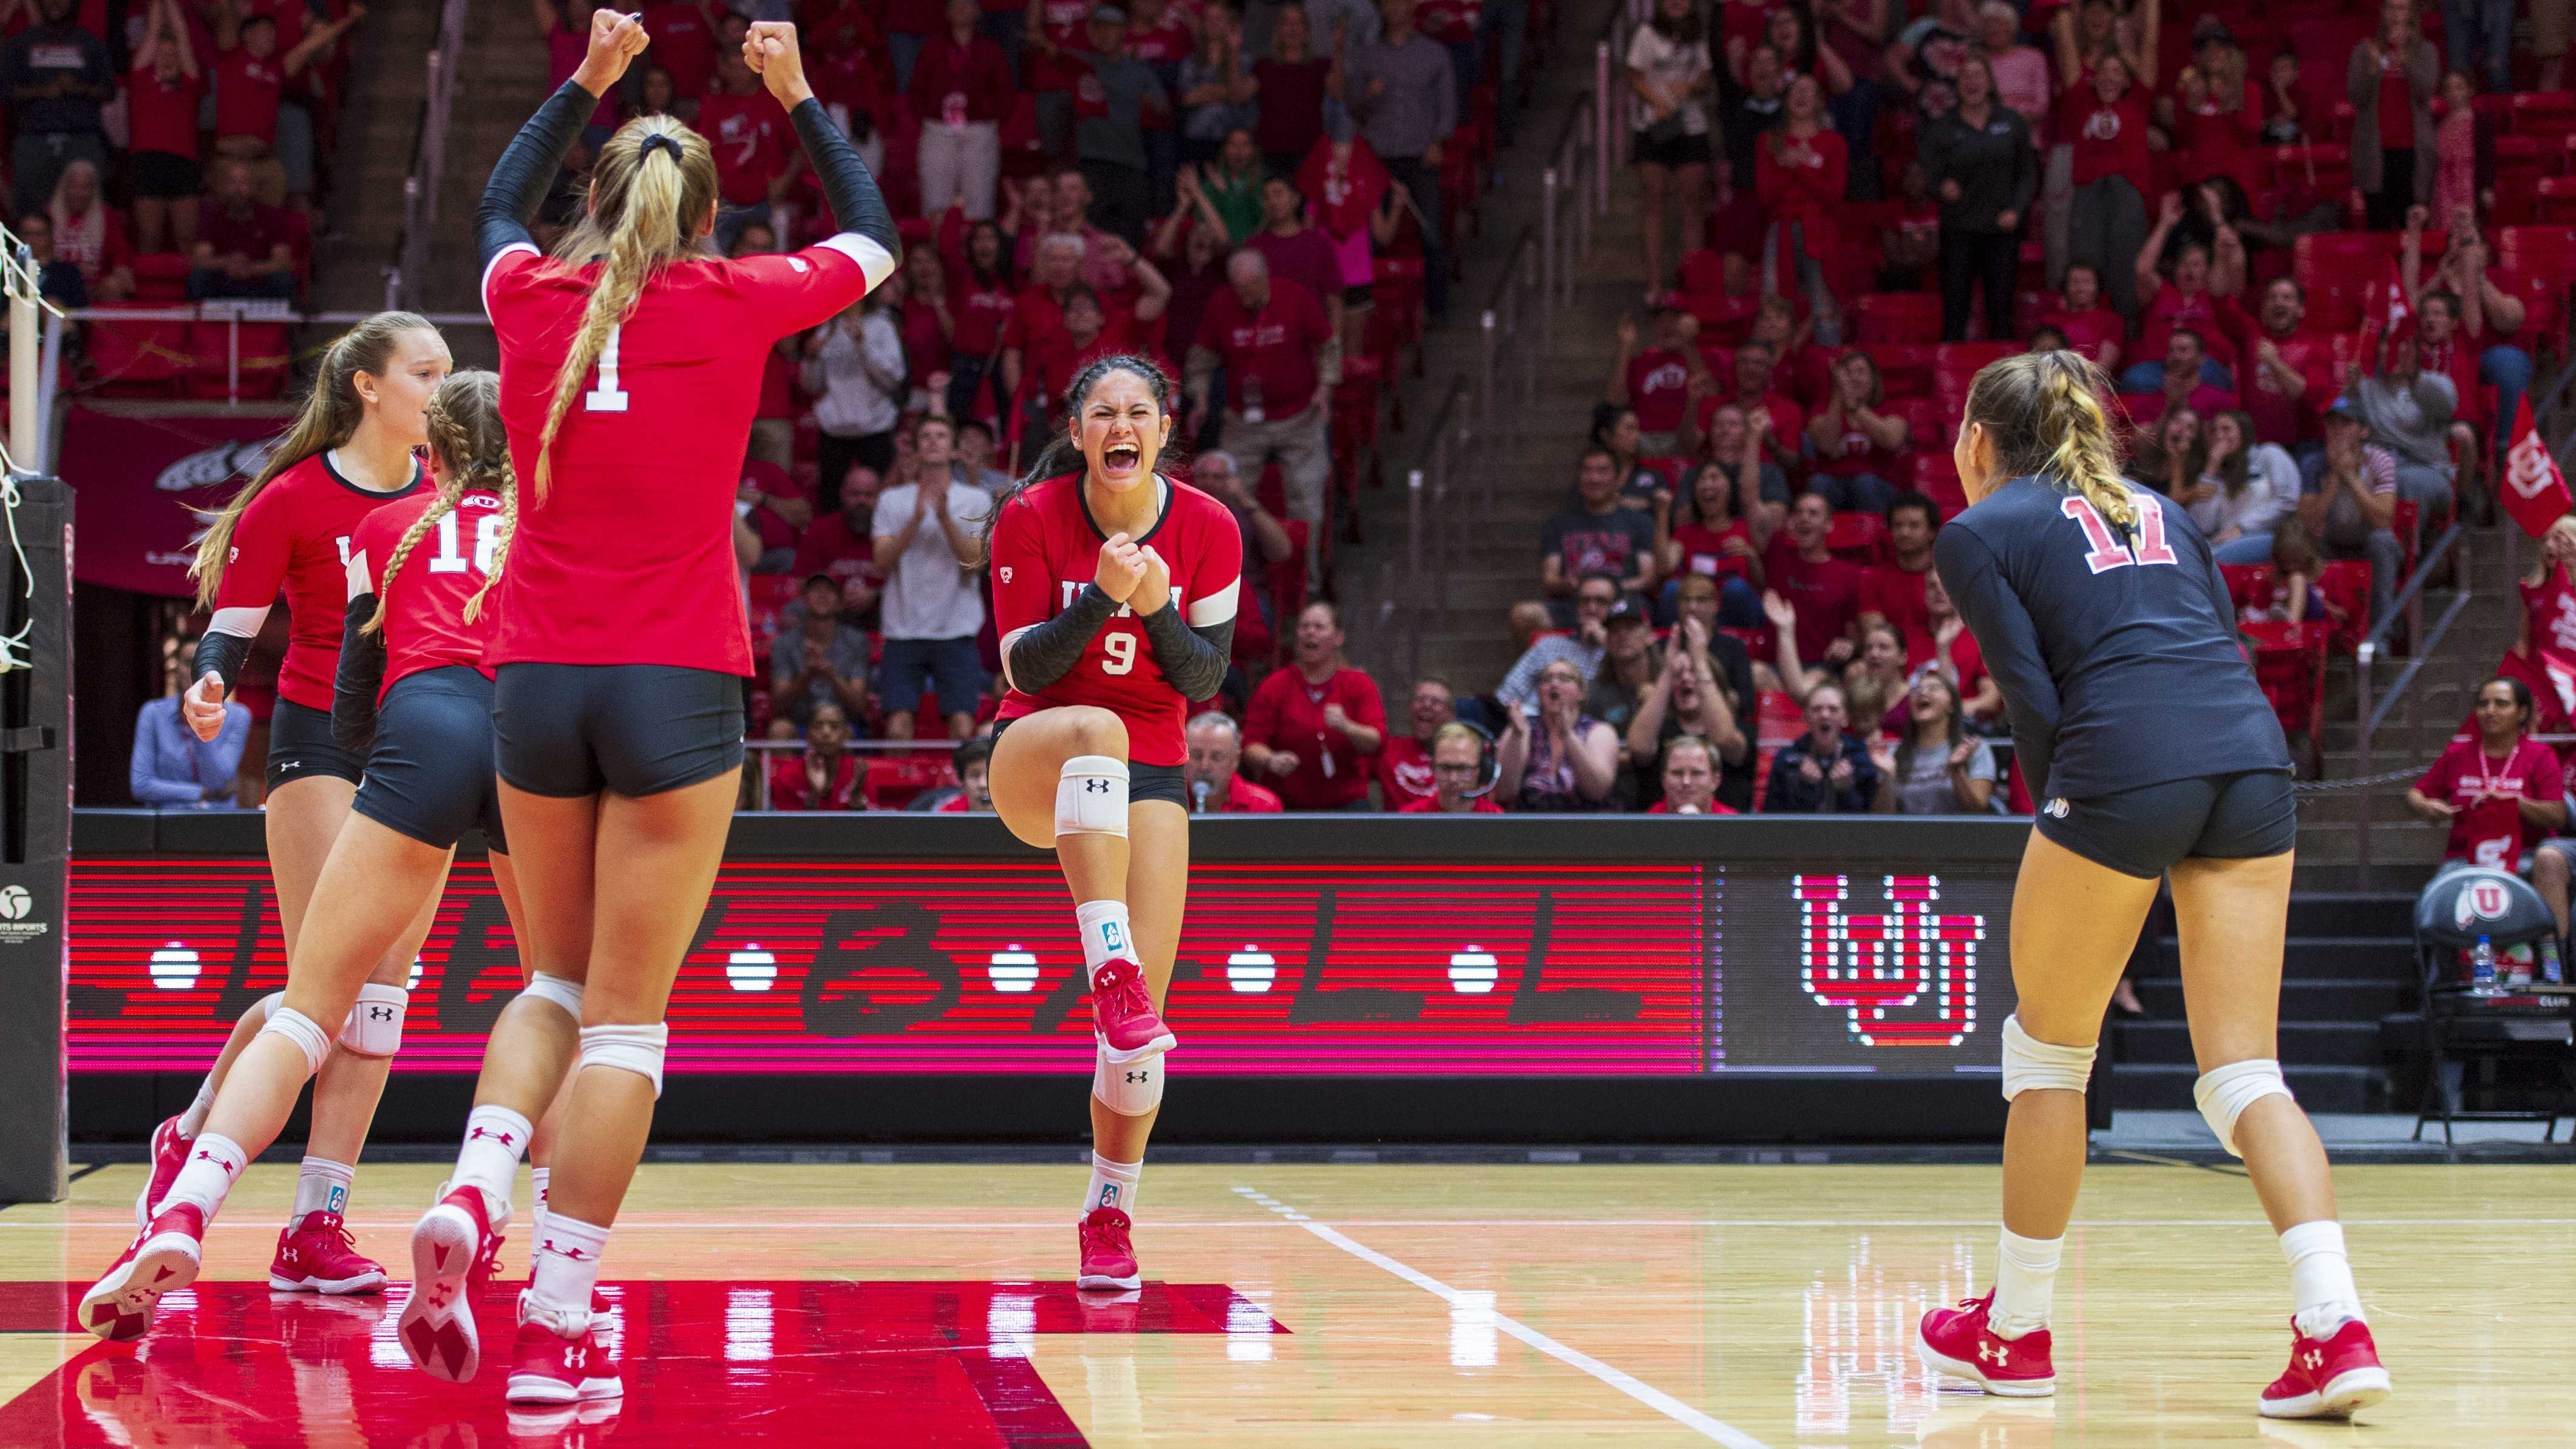 The University of Utah Utes celebrate after a point in an NCAA Volleyball match vs. the UCLA Bruins at the Jon M. Huntsman Center in Salt Lake City, Utah on Friday, Sept. 21, 2018. (Photo by Kiffer Creveling | The Daily Utah Chronicle)